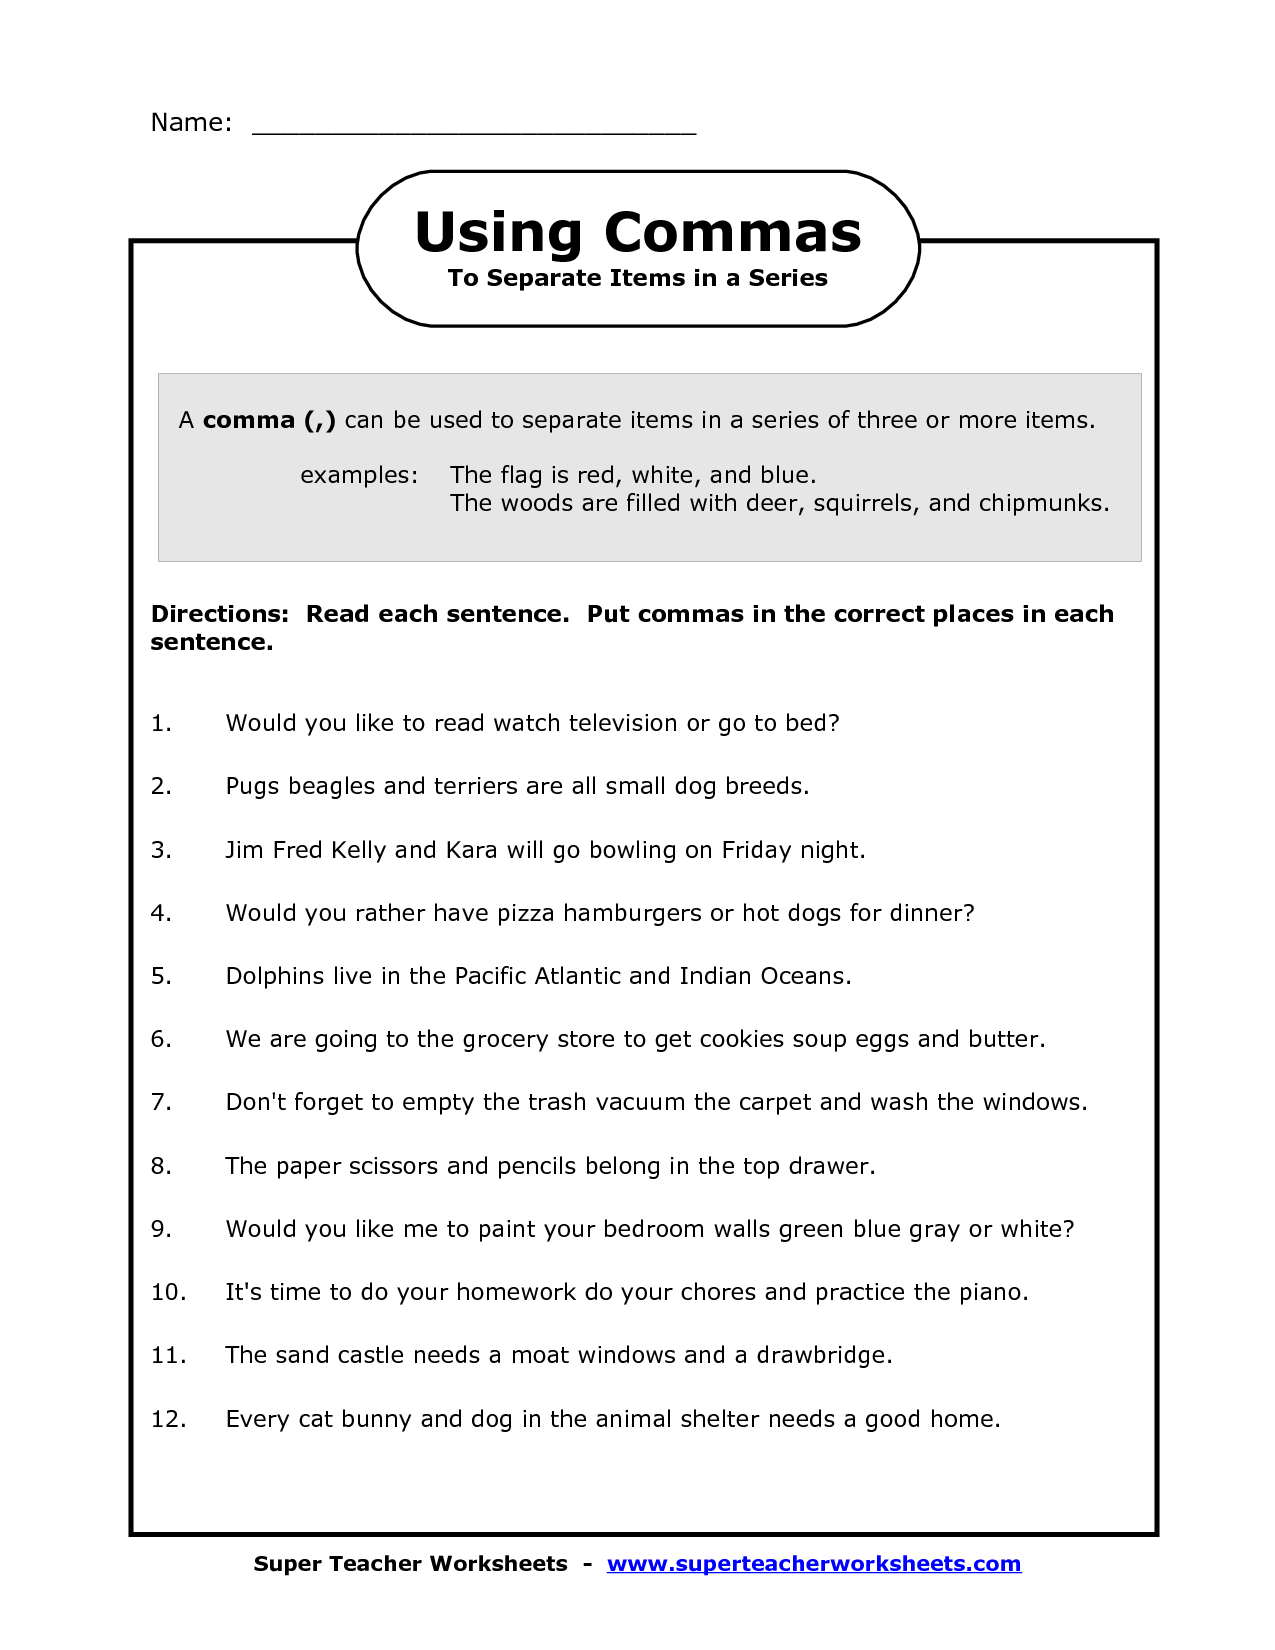 Worksheets Comma Practice Worksheets comma in a series worksheets image commas worksheet worksheet